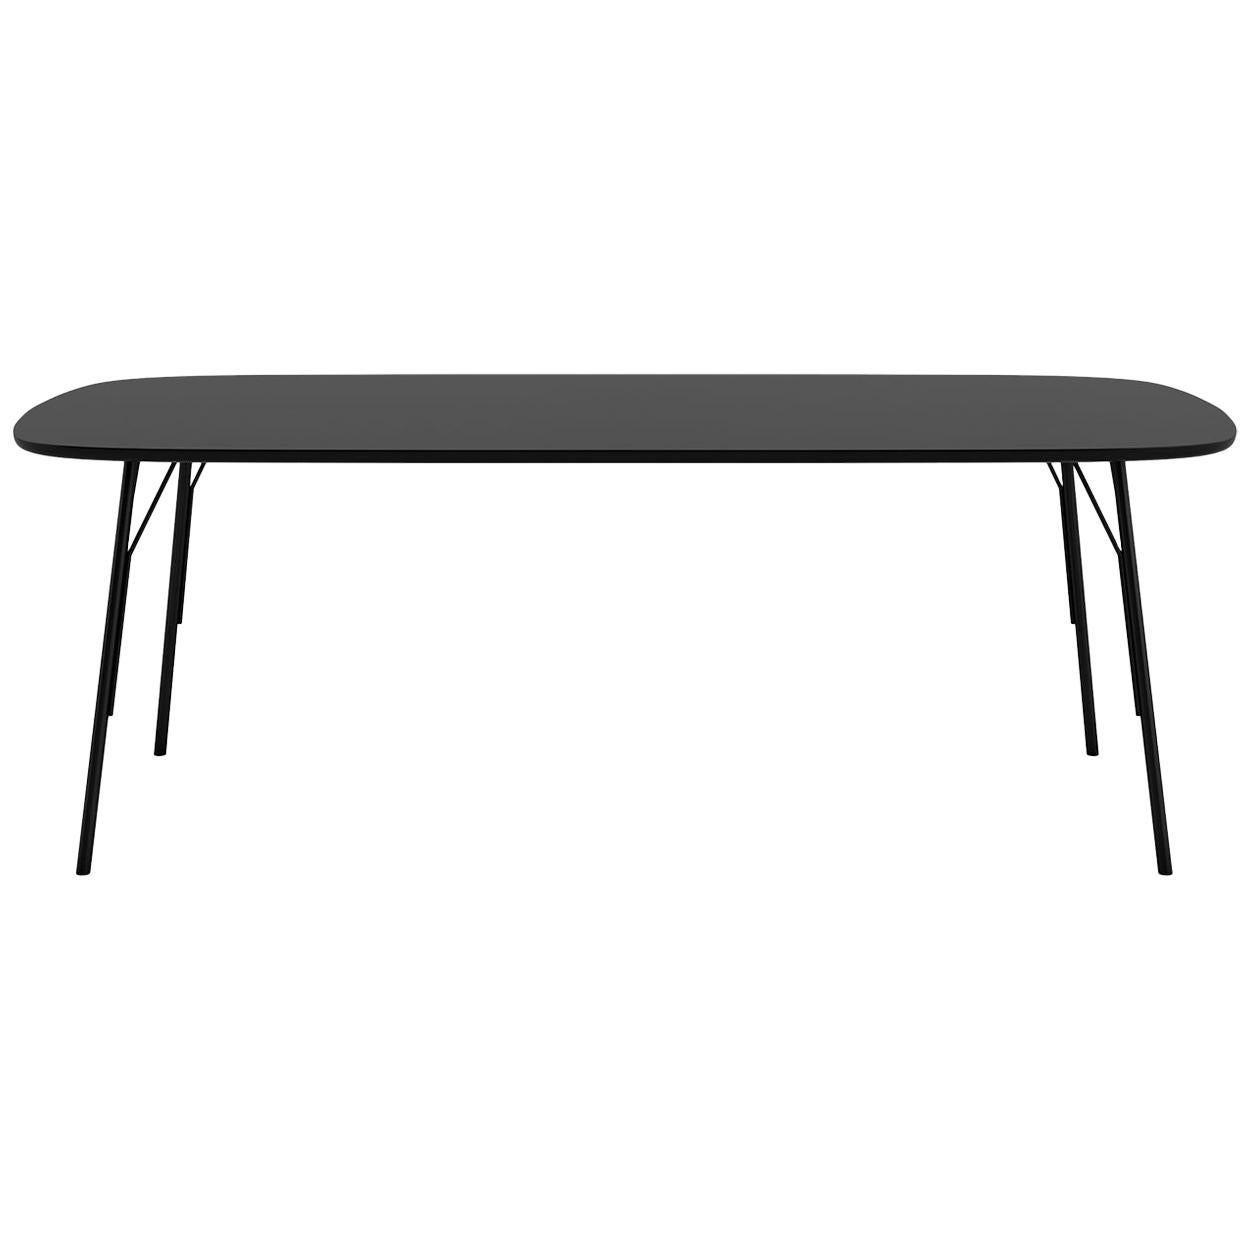 Tacchini Kelly T Large Table in Black by Claesson Koivisto Rune